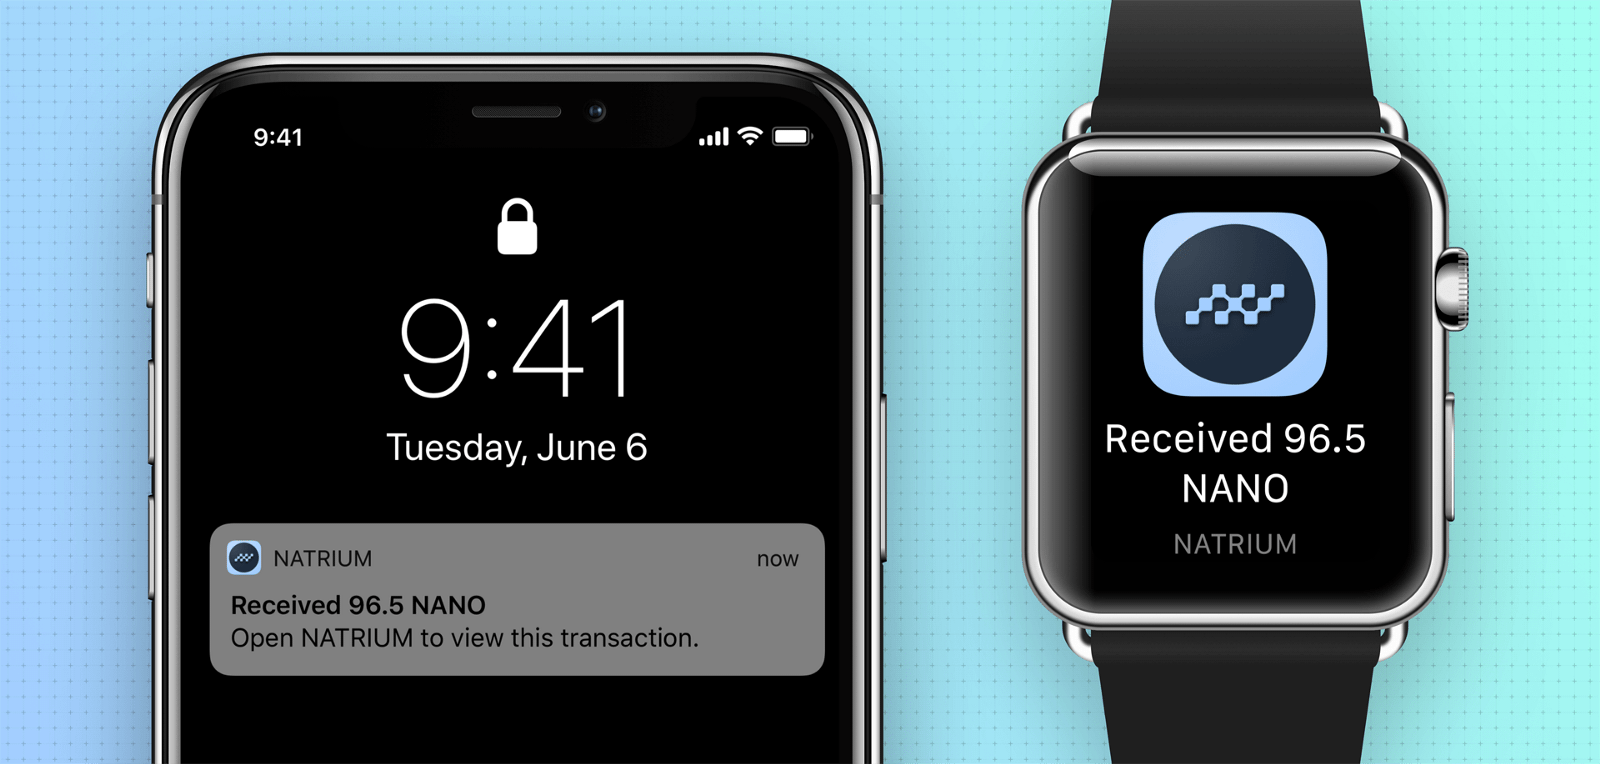 Get notifications when you receive Nano, under a second